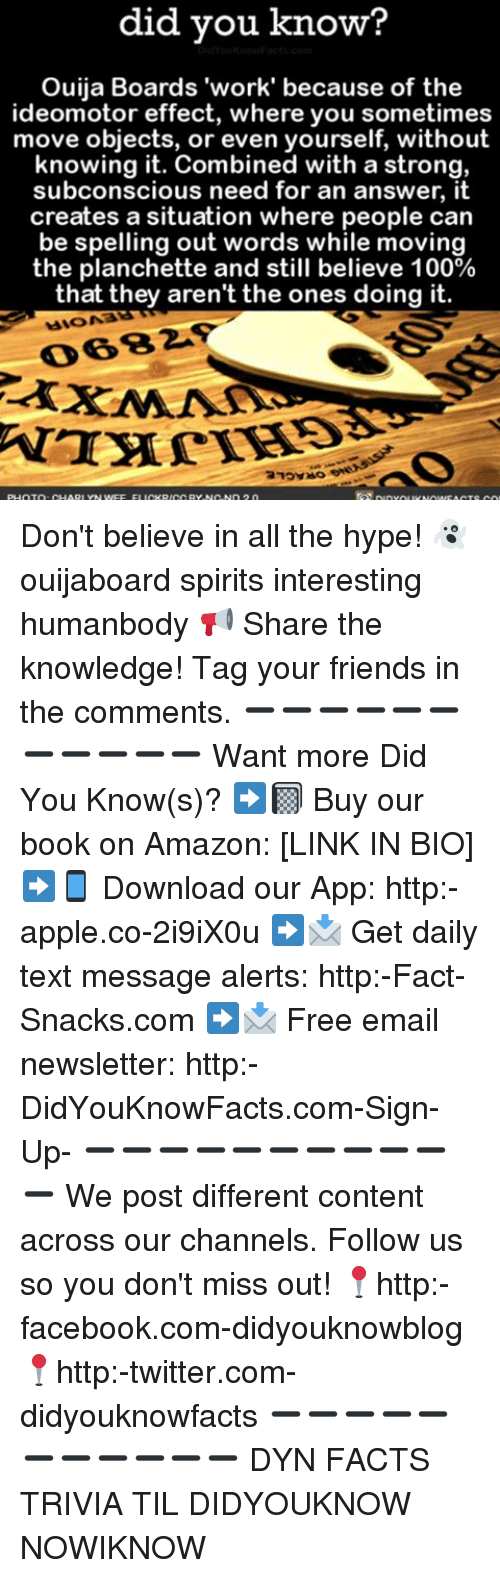 Amazon, Anaconda, and Apple: did you know?  Ouija Boards 'work' because of the  ideomotor effect, where you sometimes  move objects, or even yourself, without  knowing it. Combined with a strong,  subconscious need for an answer, it  creates a situation where people can  be spelling out words while moving  the planchette and still believe 100%  that they aren't the ones doing it.  PHOTO CHARIYNw Don't believe in all the hype! 👻 ouijaboard spirits interesting humanbody 📢 Share the knowledge! Tag your friends in the comments. ➖➖➖➖➖➖➖➖➖➖➖ Want more Did You Know(s)? ➡📓 Buy our book on Amazon: [LINK IN BIO] ➡📱 Download our App: http:-apple.co-2i9iX0u ➡📩 Get daily text message alerts: http:-Fact-Snacks.com ➡📩 Free email newsletter: http:-DidYouKnowFacts.com-Sign-Up- ➖➖➖➖➖➖➖➖➖➖➖ We post different content across our channels. Follow us so you don't miss out! 📍http:-facebook.com-didyouknowblog 📍http:-twitter.com-didyouknowfacts ➖➖➖➖➖➖➖➖➖➖➖ DYN FACTS TRIVIA TIL DIDYOUKNOW NOWIKNOW